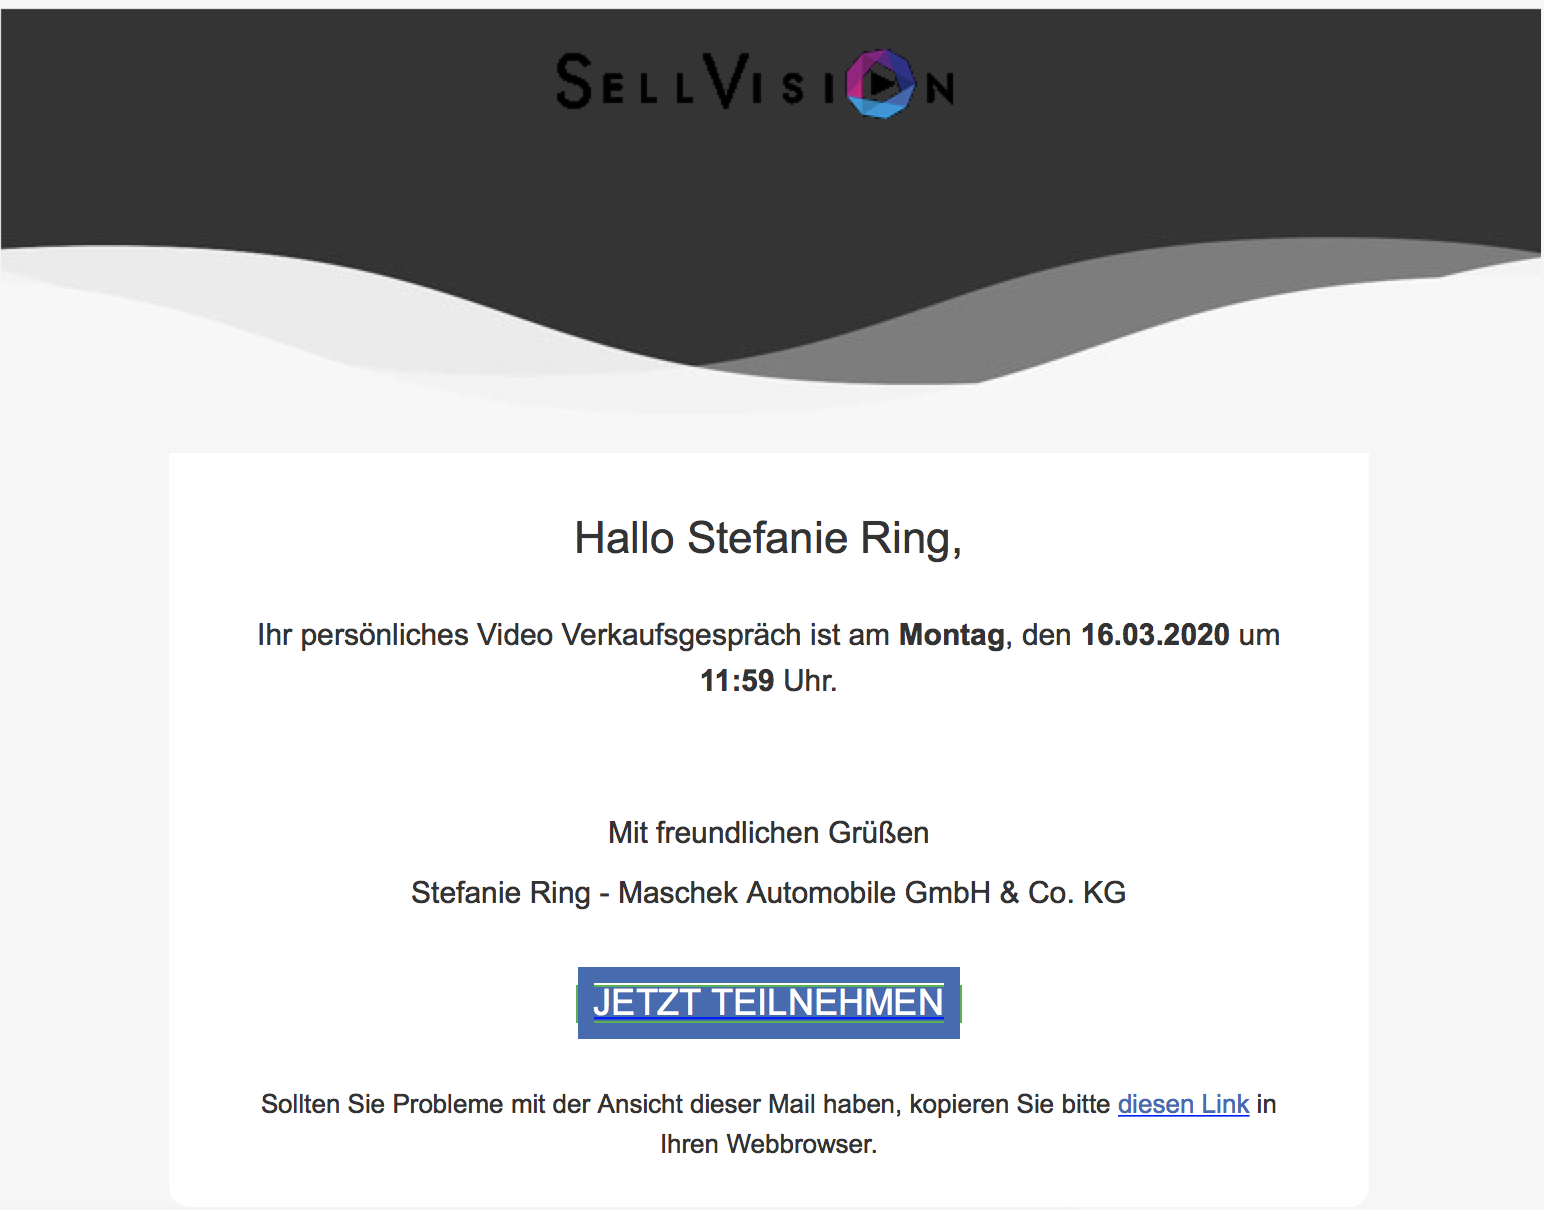 E-Mail Sellvision | Maschek Automobile